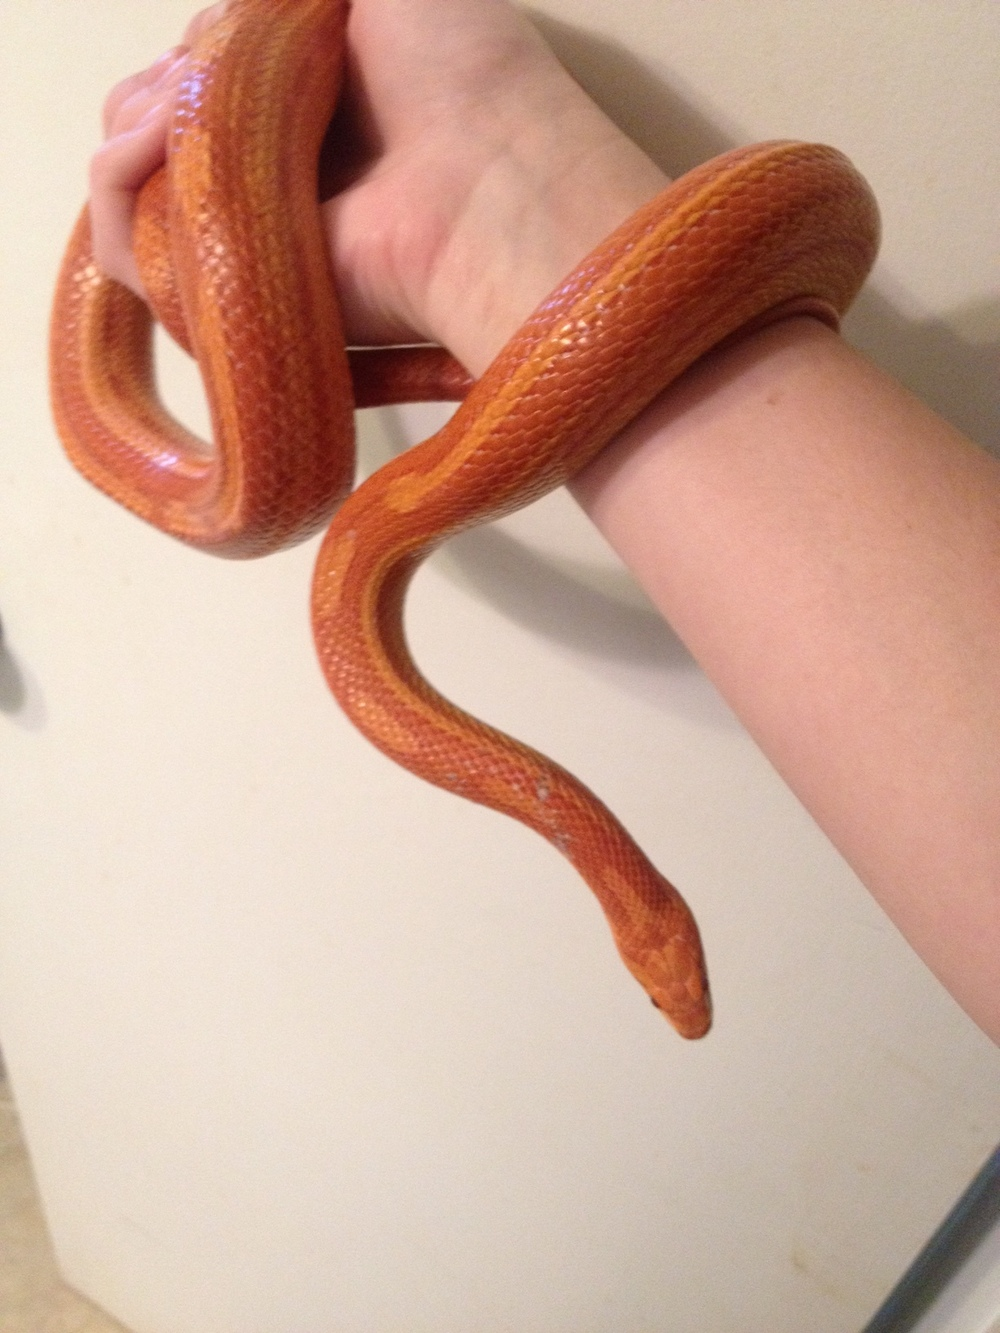 Corn snakes live mainly in the southeastern US but can be found as far north as New Jersey. They are one of the best snakes for families or beginner reptile keepers and come in a variety of colors, or morphs.